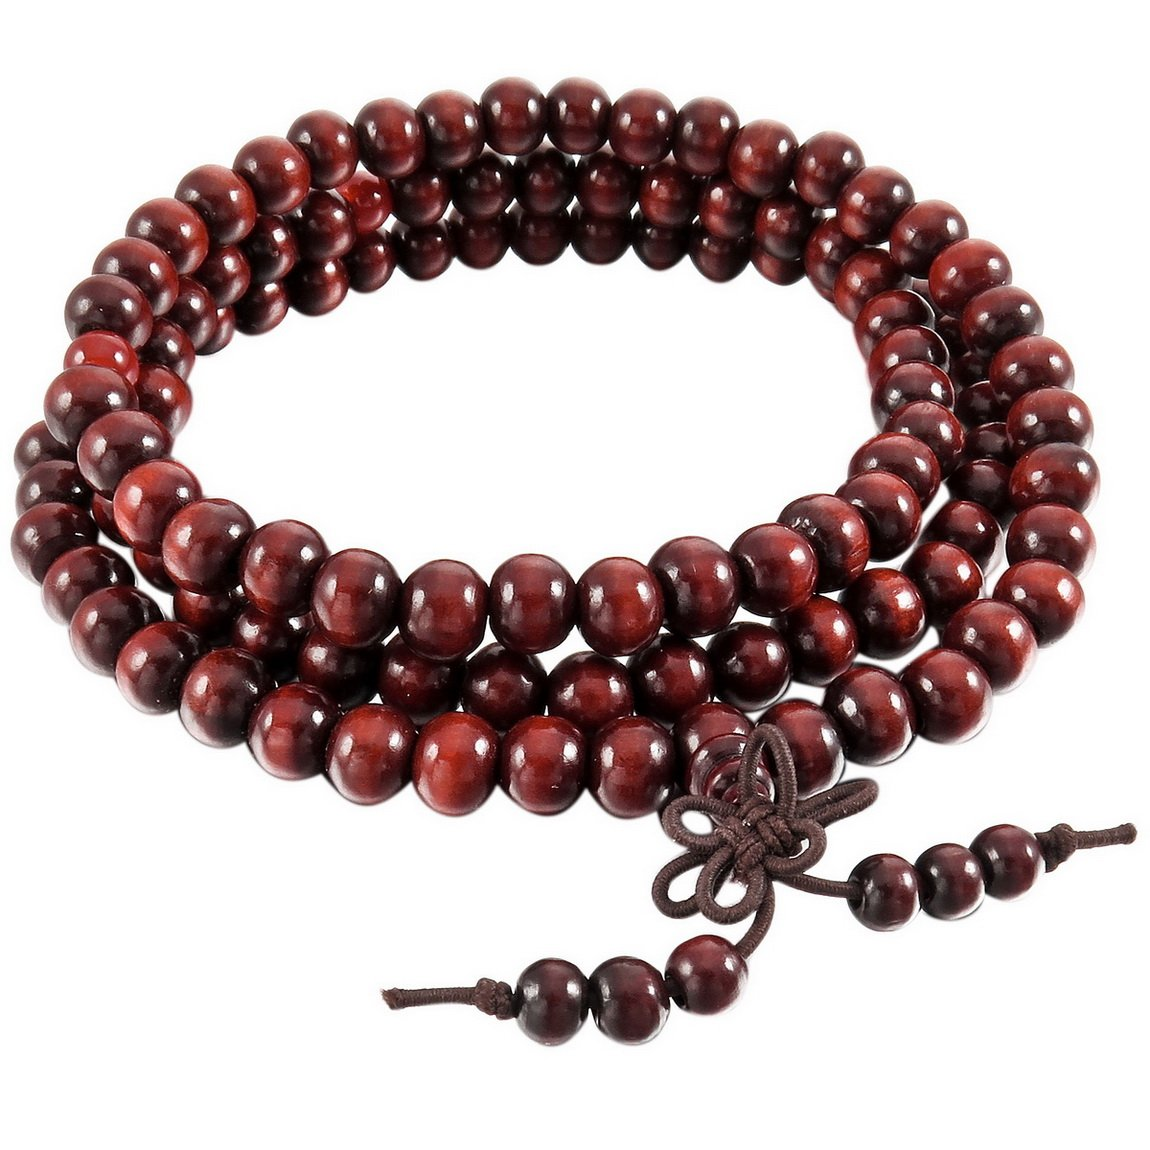 INBLUE Men, Women's 8mm Wood Bracelet Link Wrist Necklace Chain Tibetan Buddhist Sandalwood Bead Prayer Buddha Mala Chinese knot Elastic INBLUE Jewelry mnb0912-2